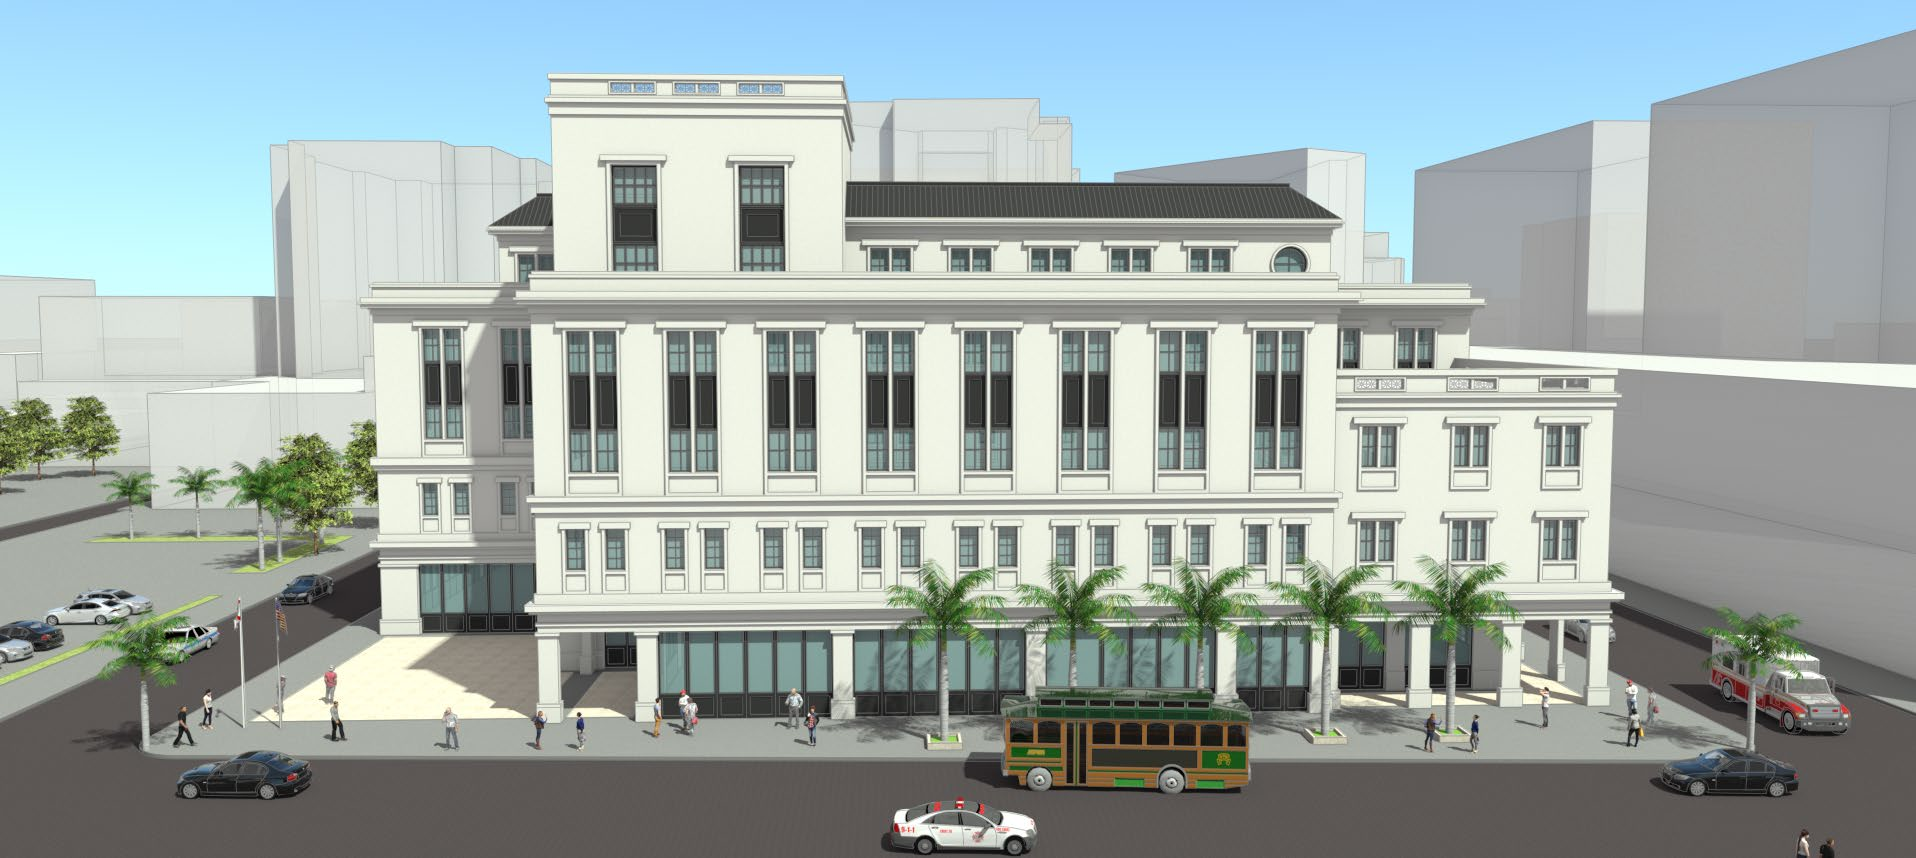 Rendering of the Coral Gables Public Safety Building